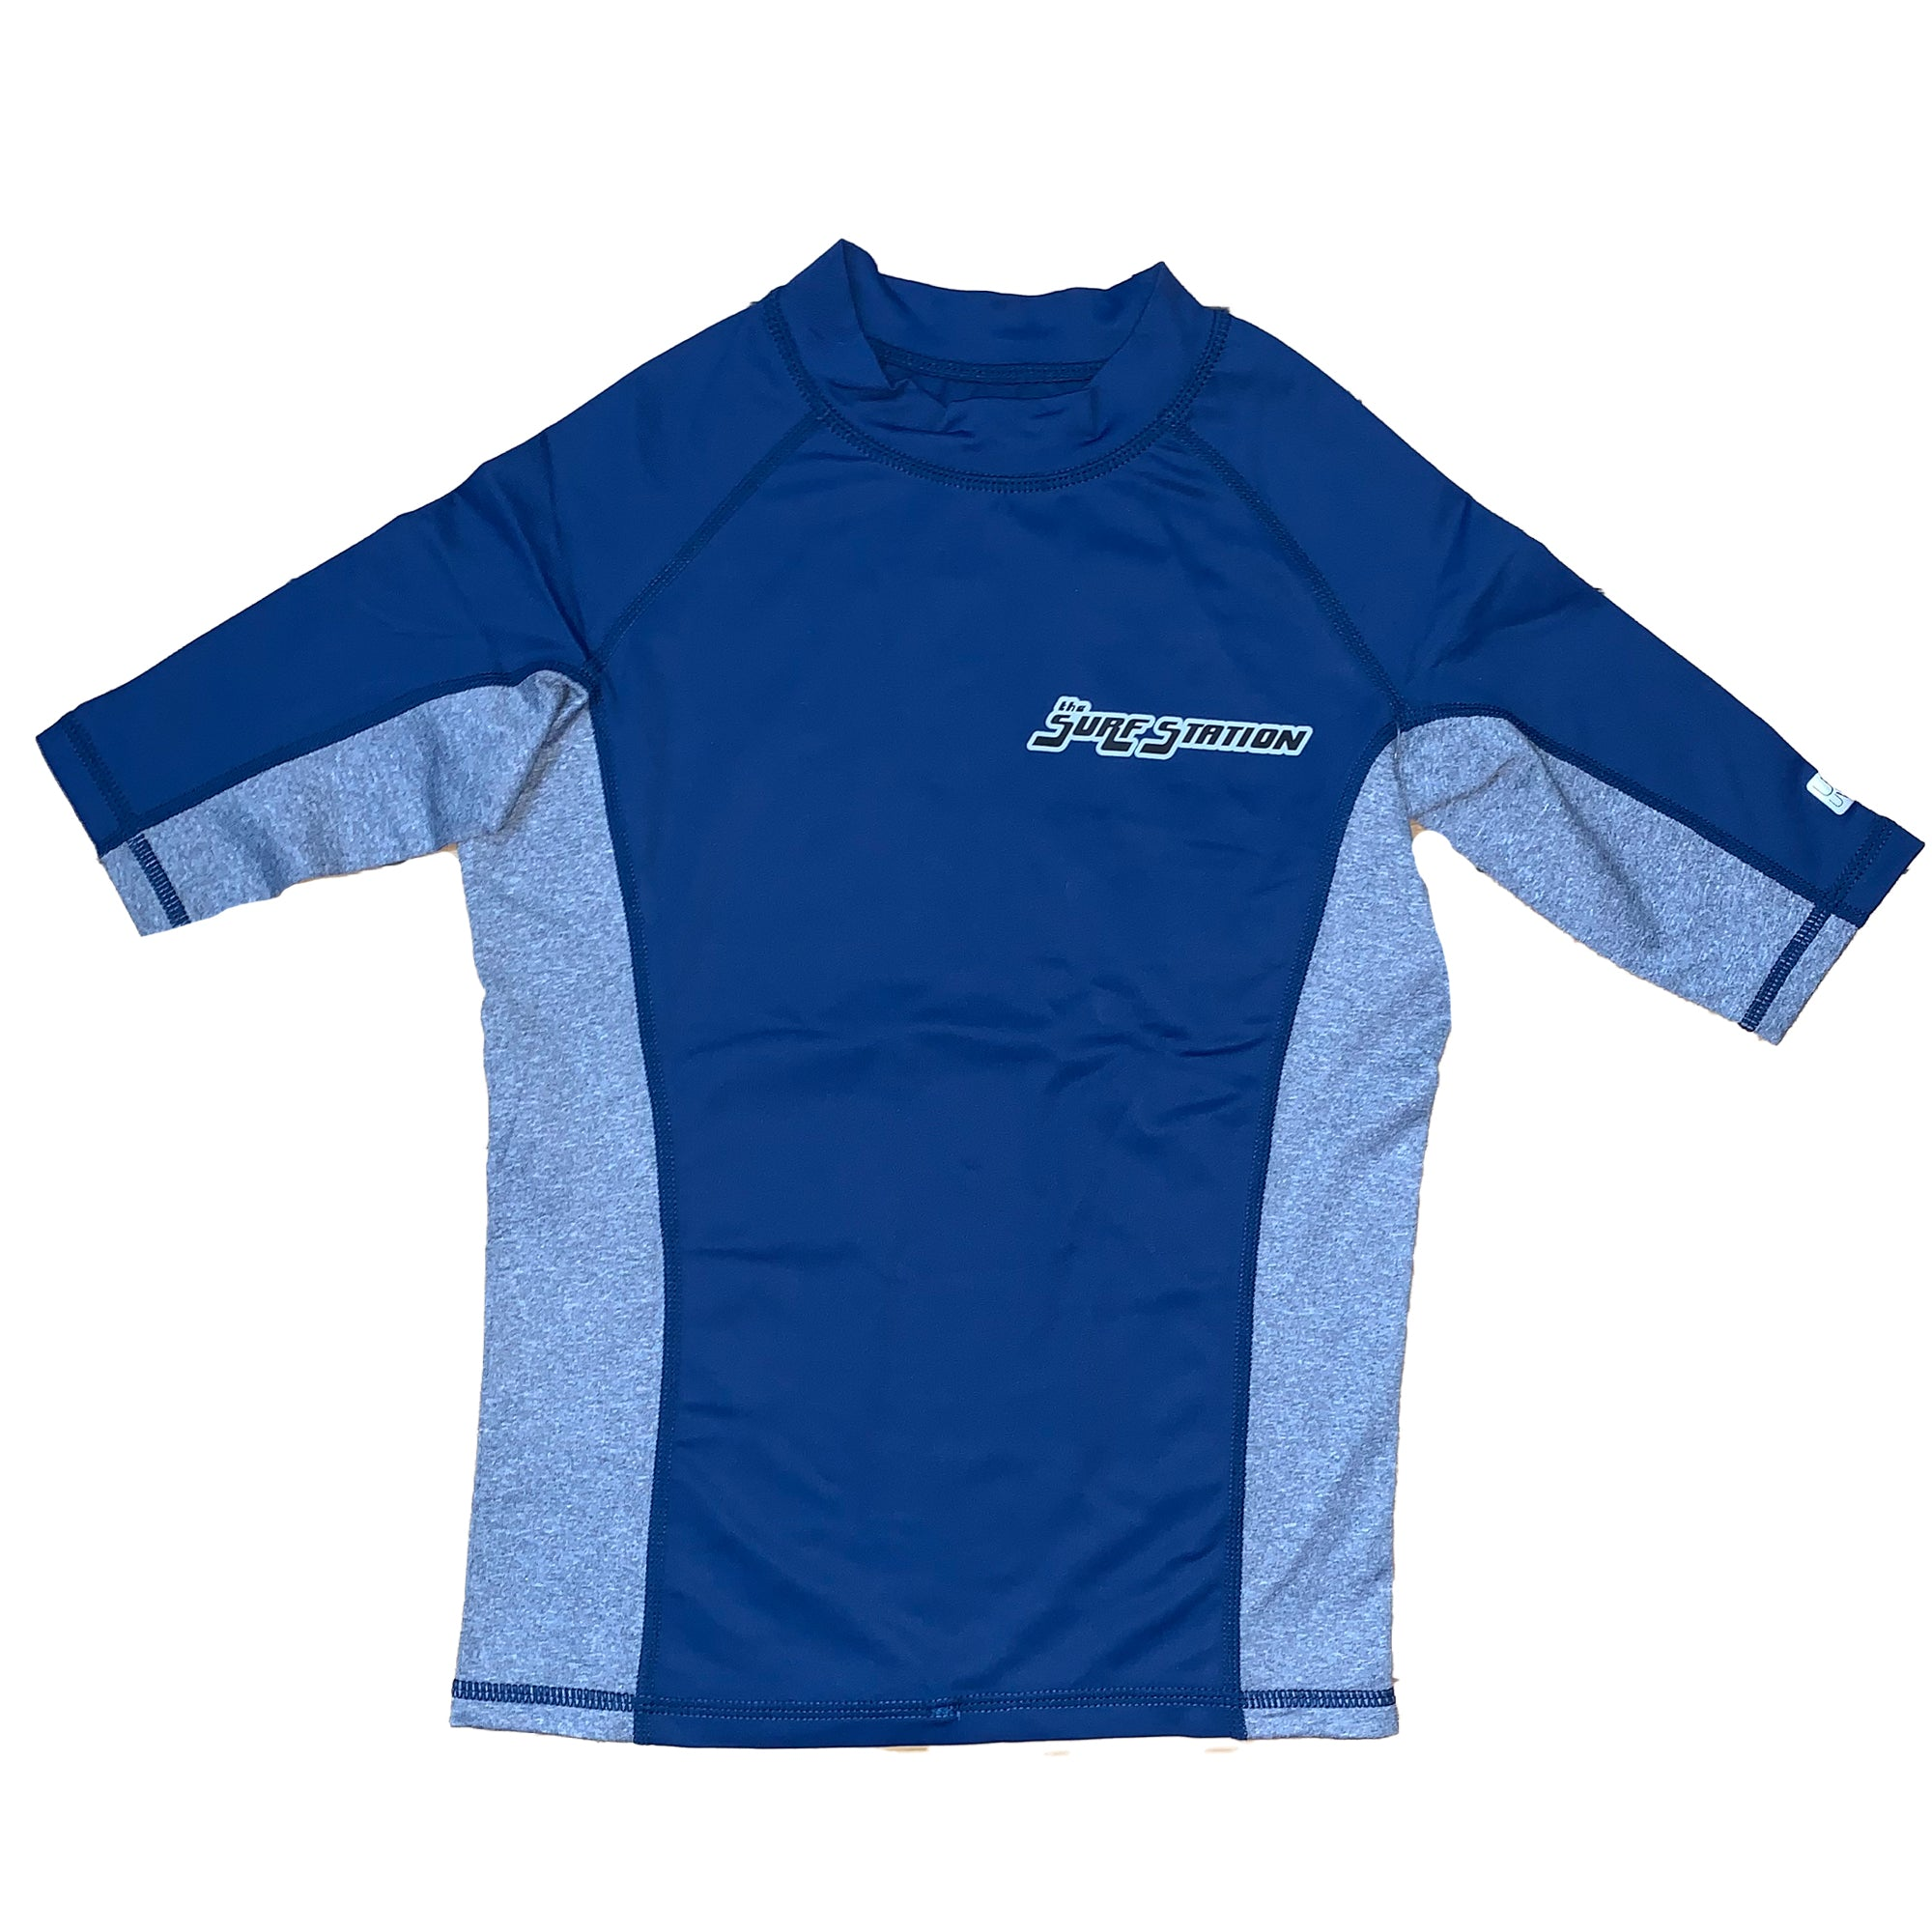 Surf Station Atlas Youth Boy's S/S Rashguard